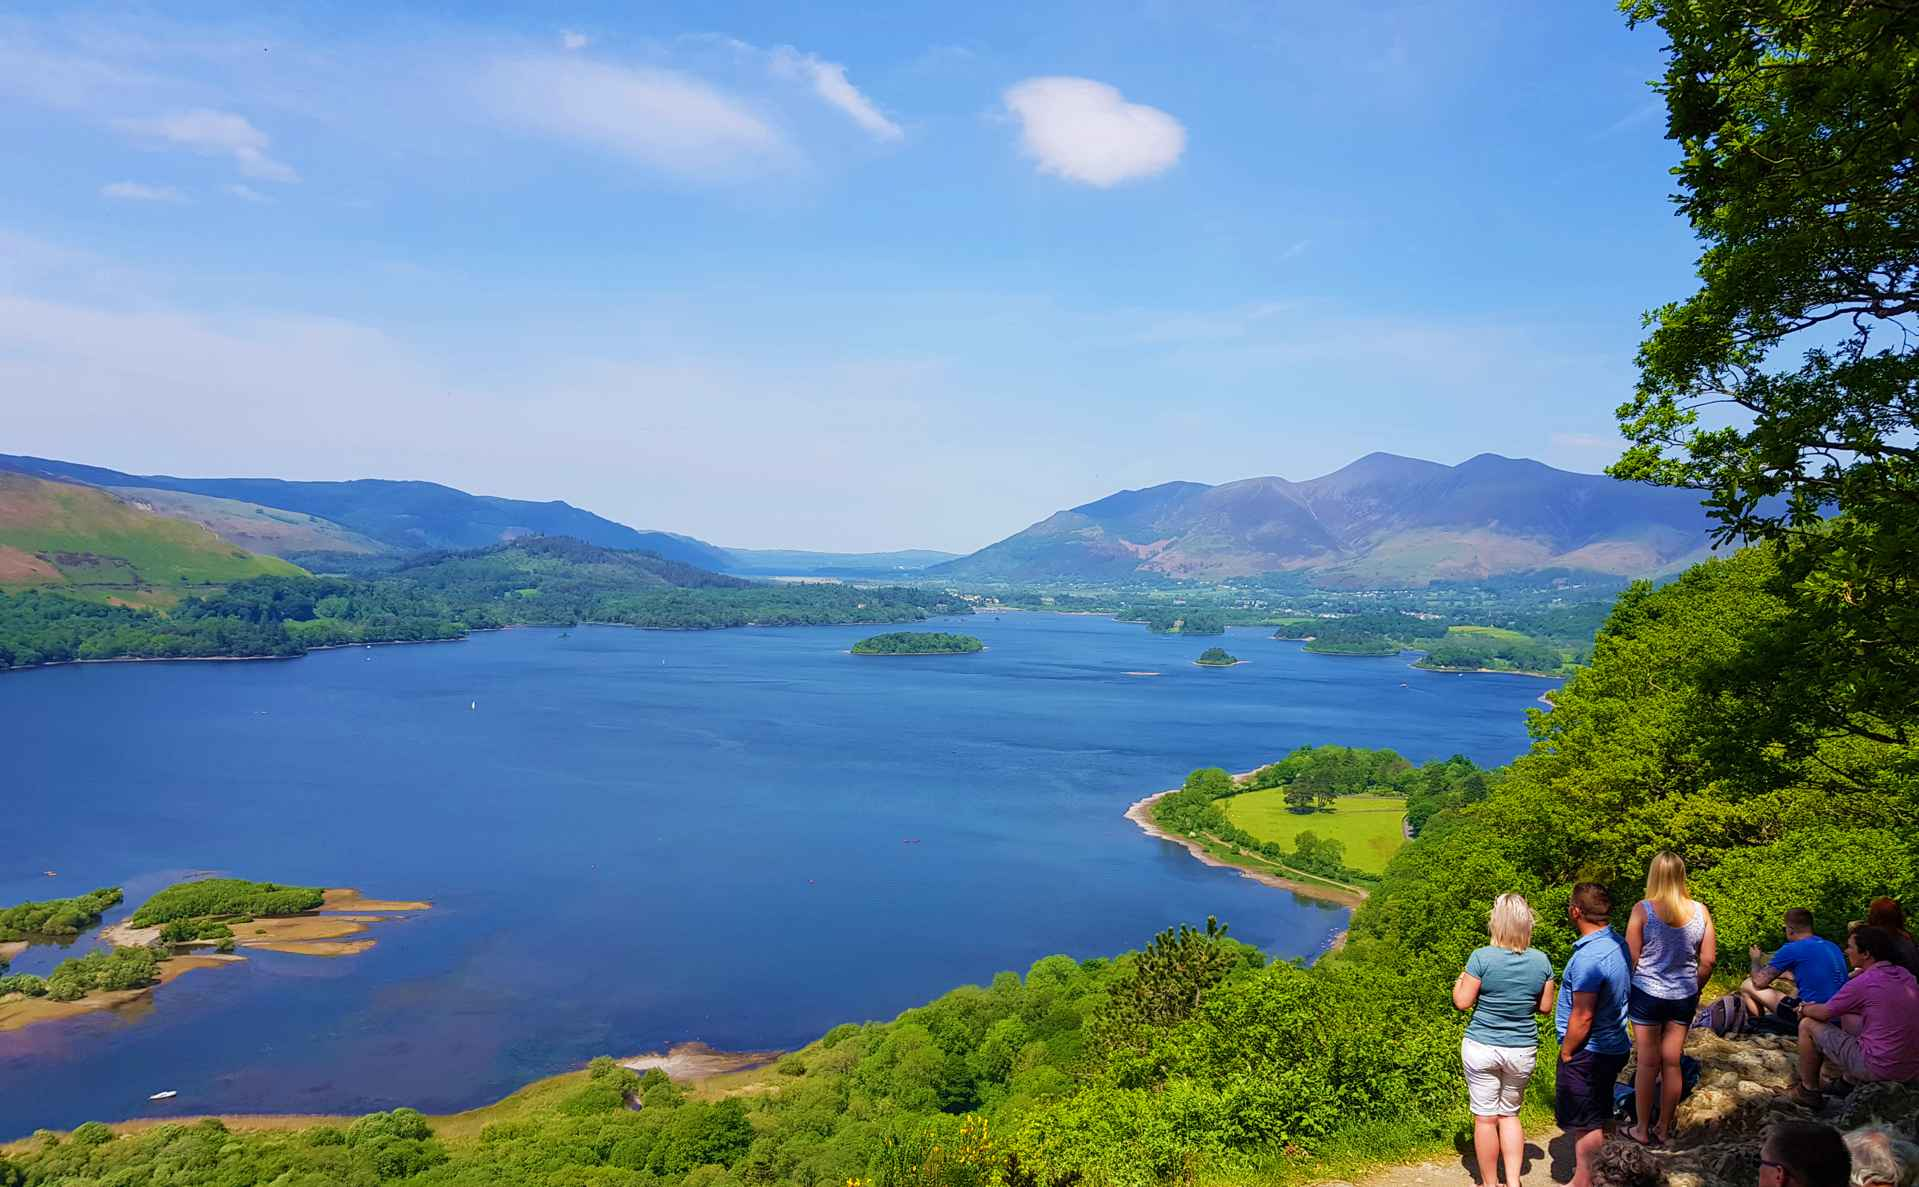 People on Lake District tours overlooking Derwentwater